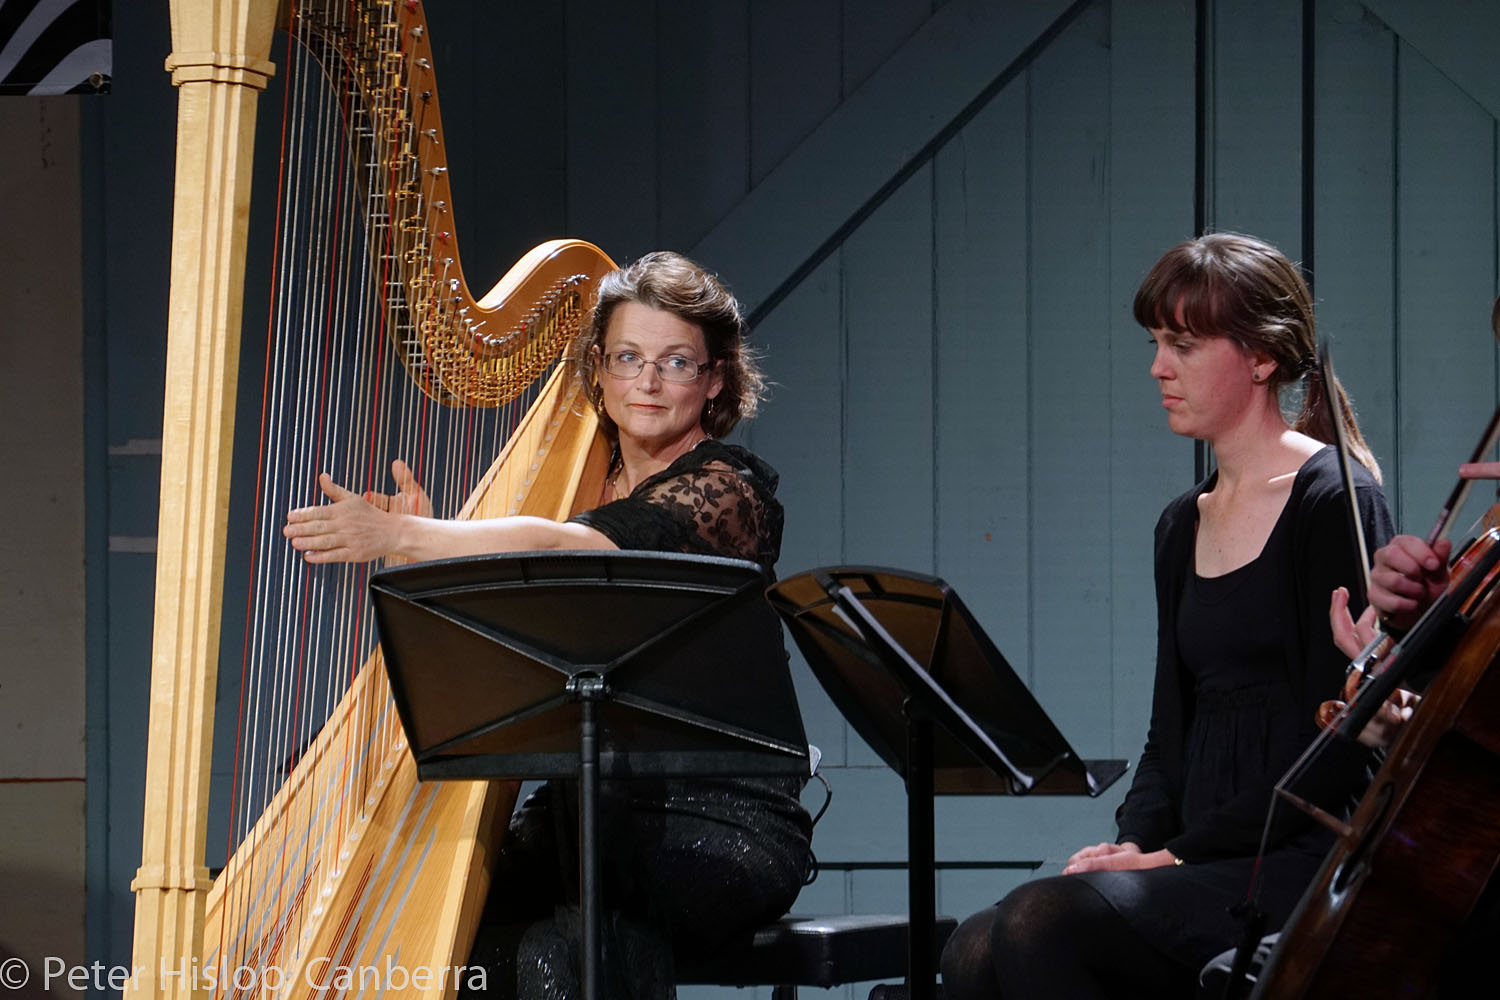 CIMF 2016 - Concert 13 - French Invention. Boccherini Trio with Virginia Taylor and Alice Giles